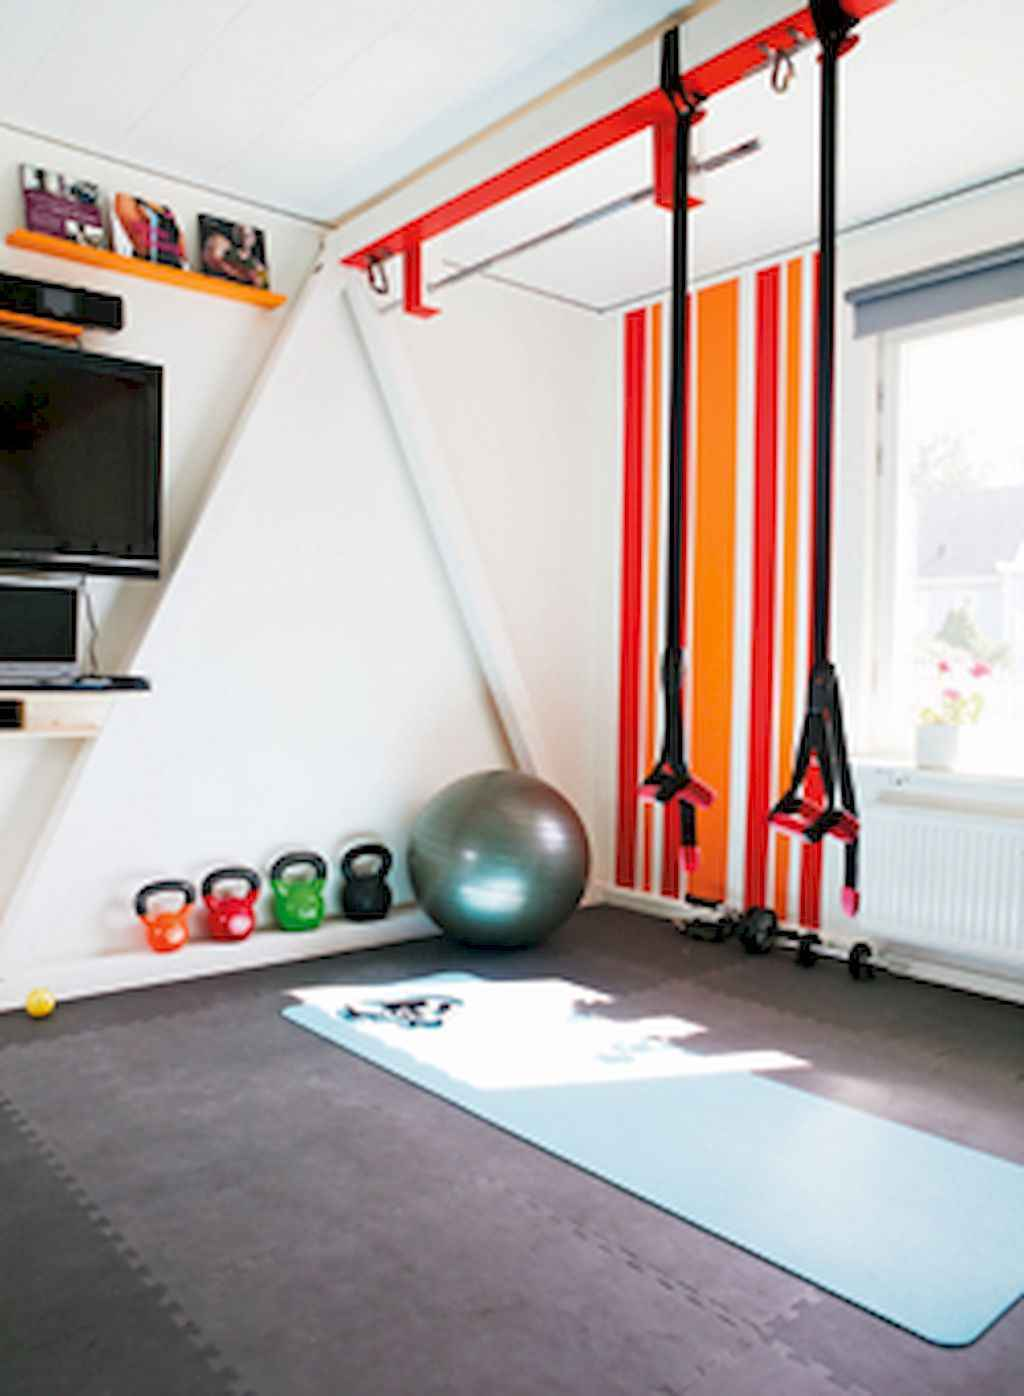 40+ Home Gym Ideas Small Spaces - LivingMarch.com